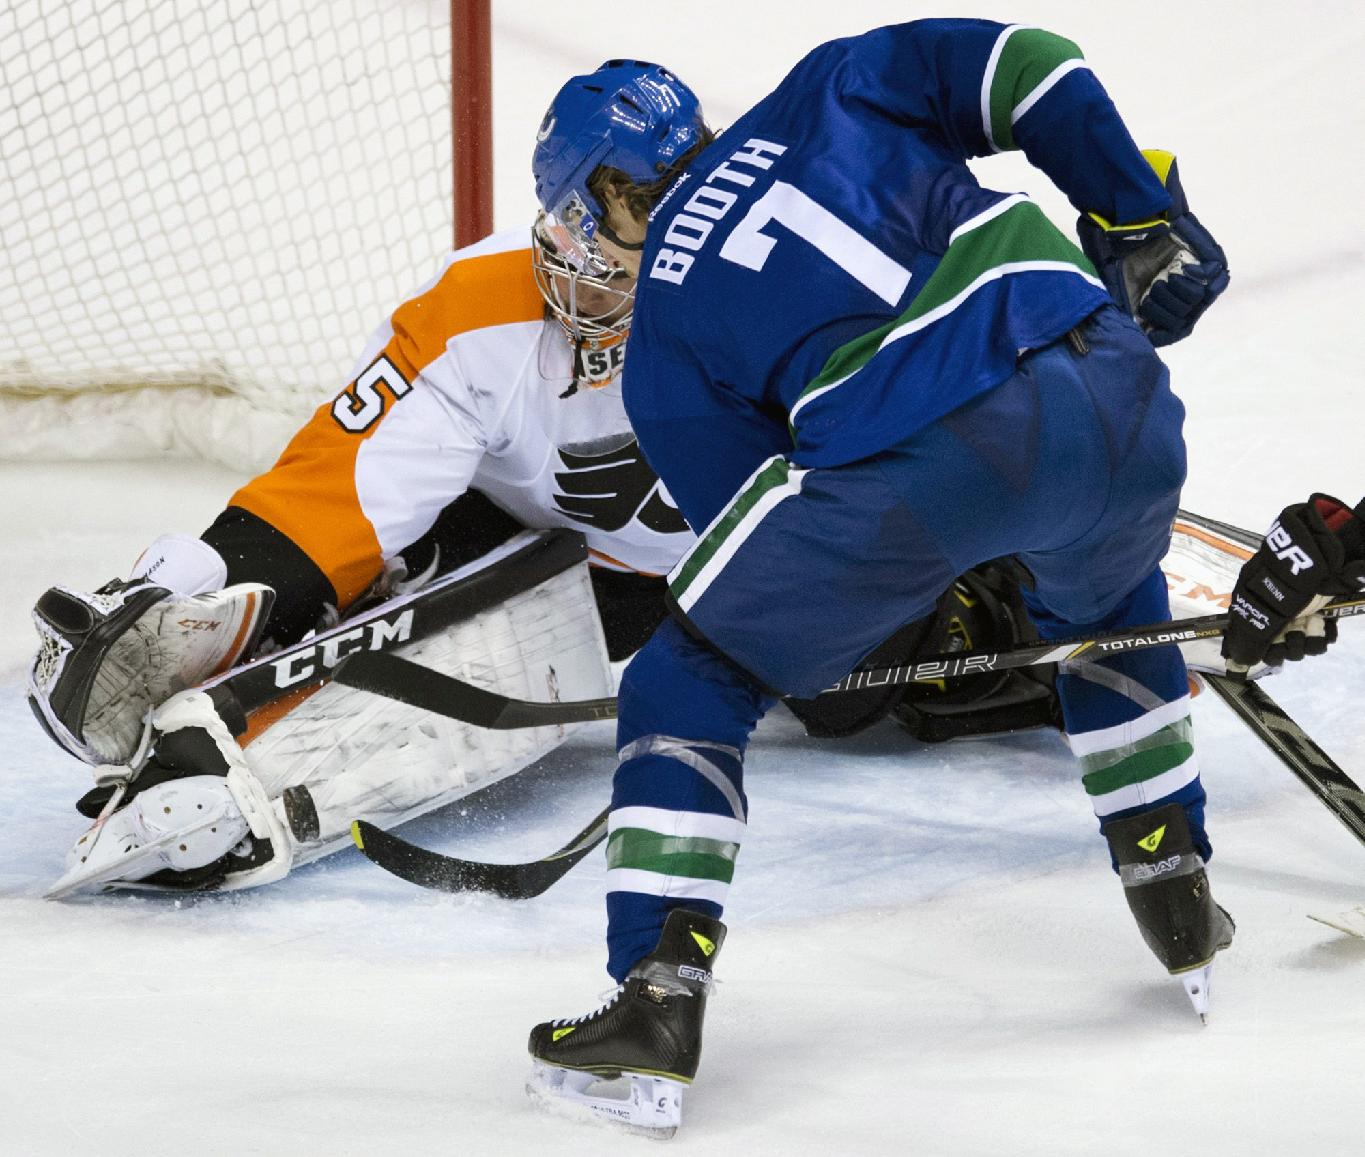 Vancouver Canucks left wing David Booth (7) tries to get a shot past Philadelphia Flyers goalie Steve Mason during the first period of an NHL hockey game against the Philadelphia Flyers in Vancouver, British Columbia, Monday, Dec. 30, 2013